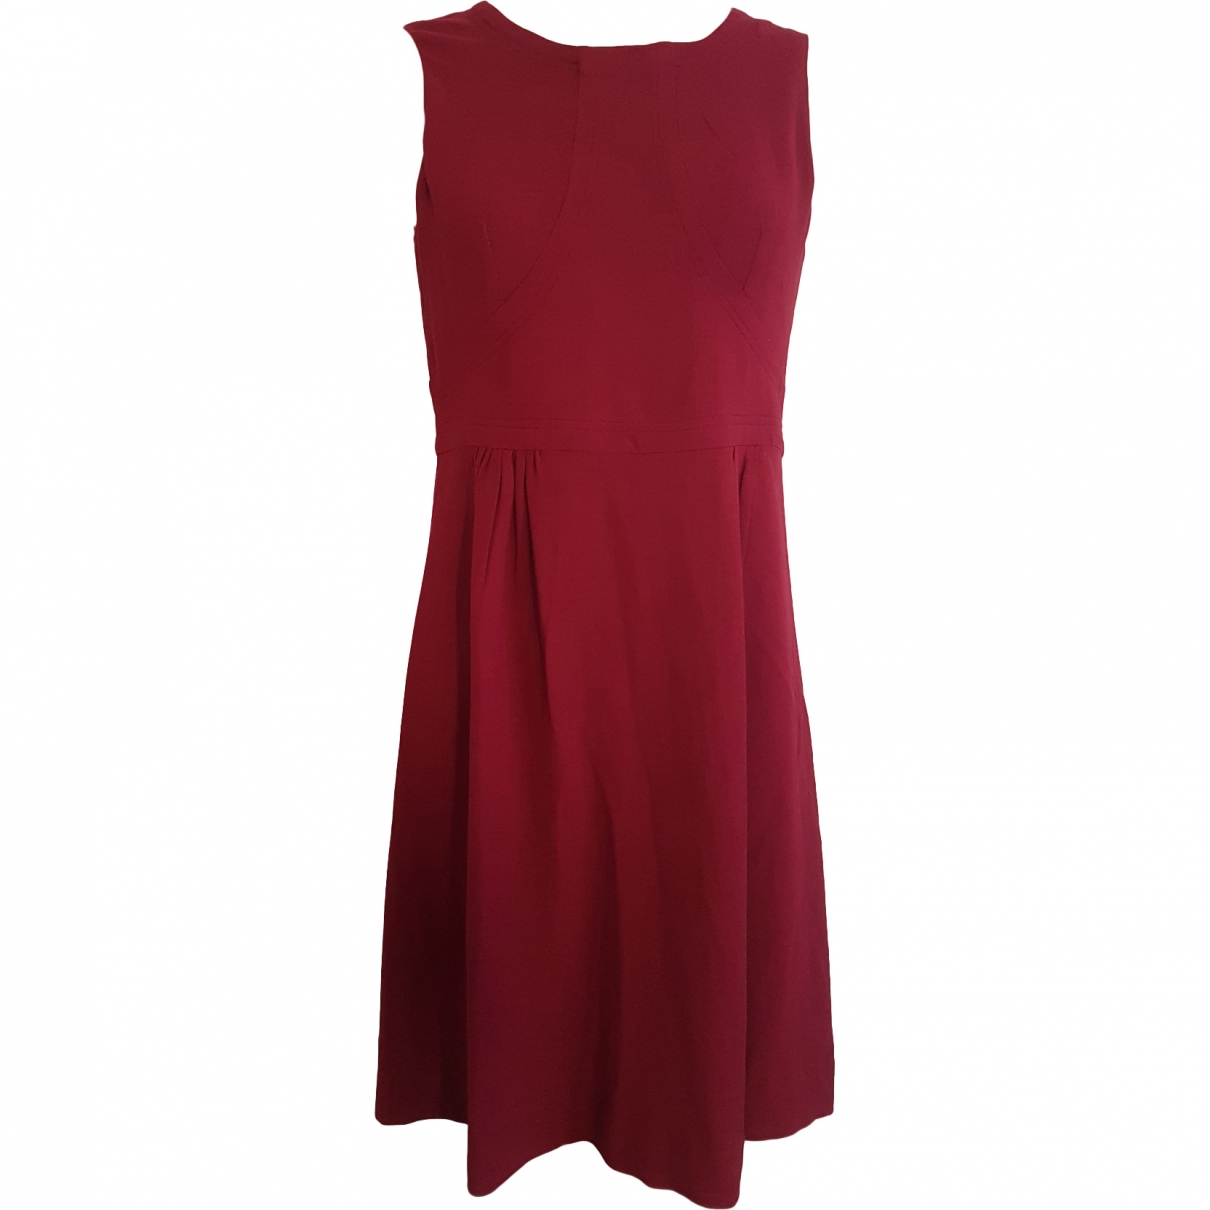 Laurence Dolige \N Red Silk dress for Women 36 FR